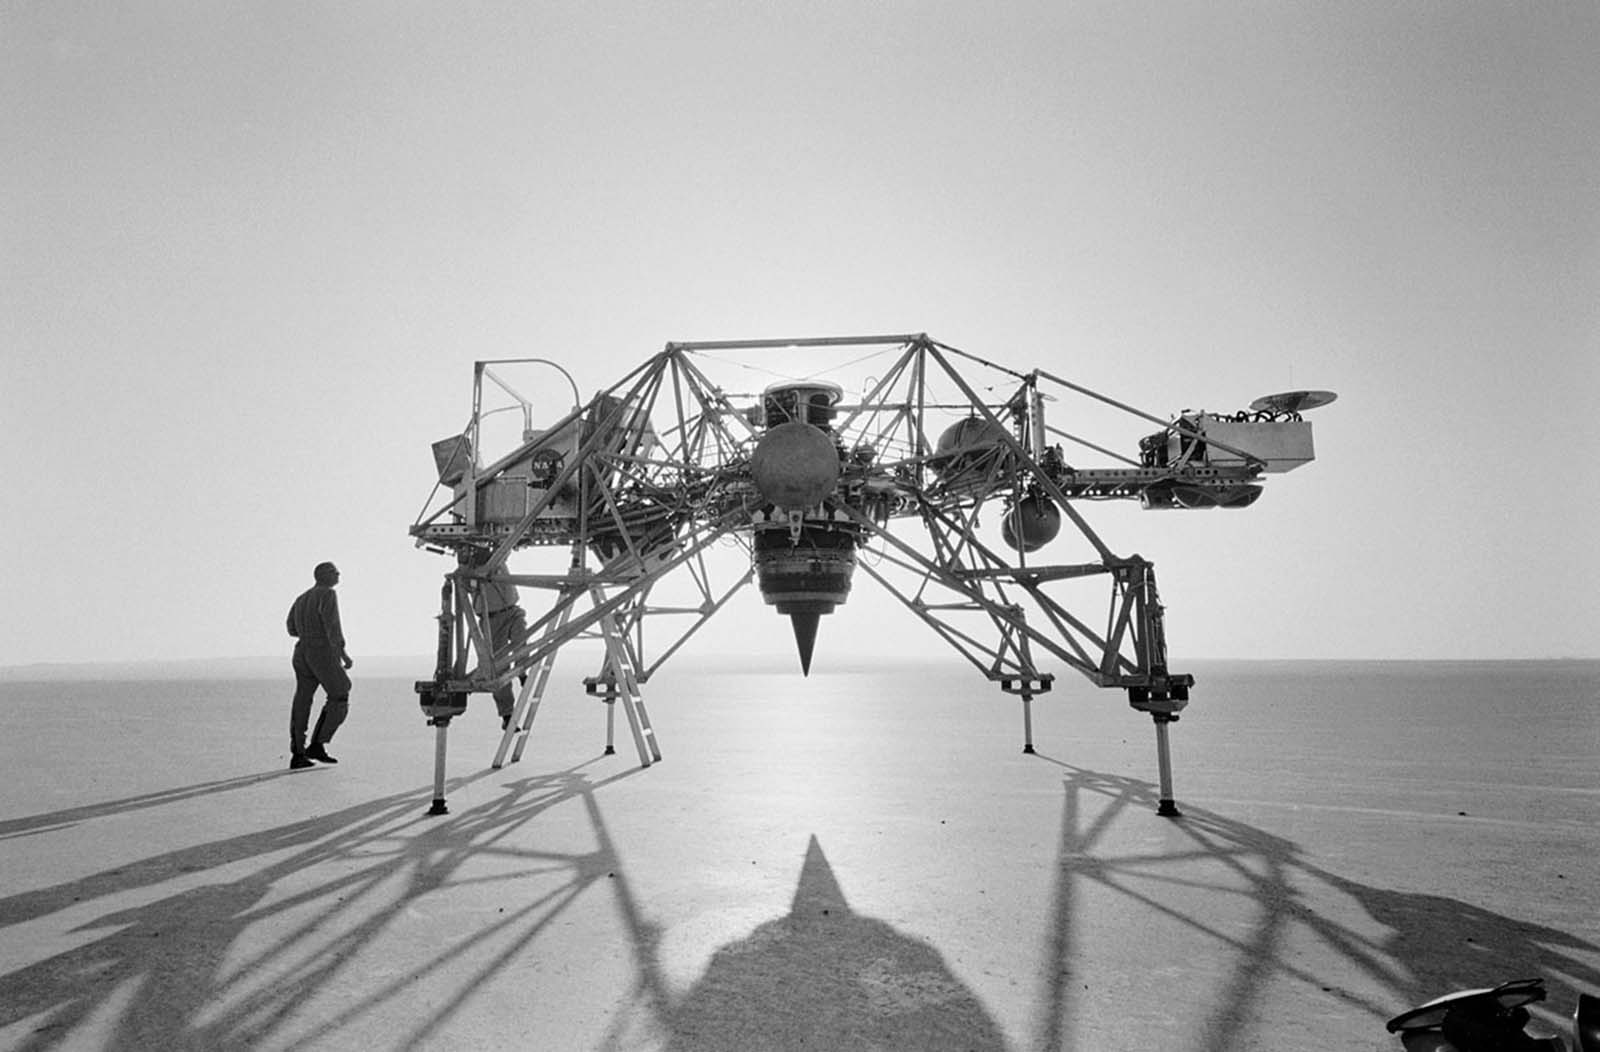 The Bell Aerosystems Lunar Landing Research Vehicle (LLRV) and the astronaut Neil Armstrong (left), photographed at Edwards Air Force Base in Southern California prior to the launch of Apollo 11.